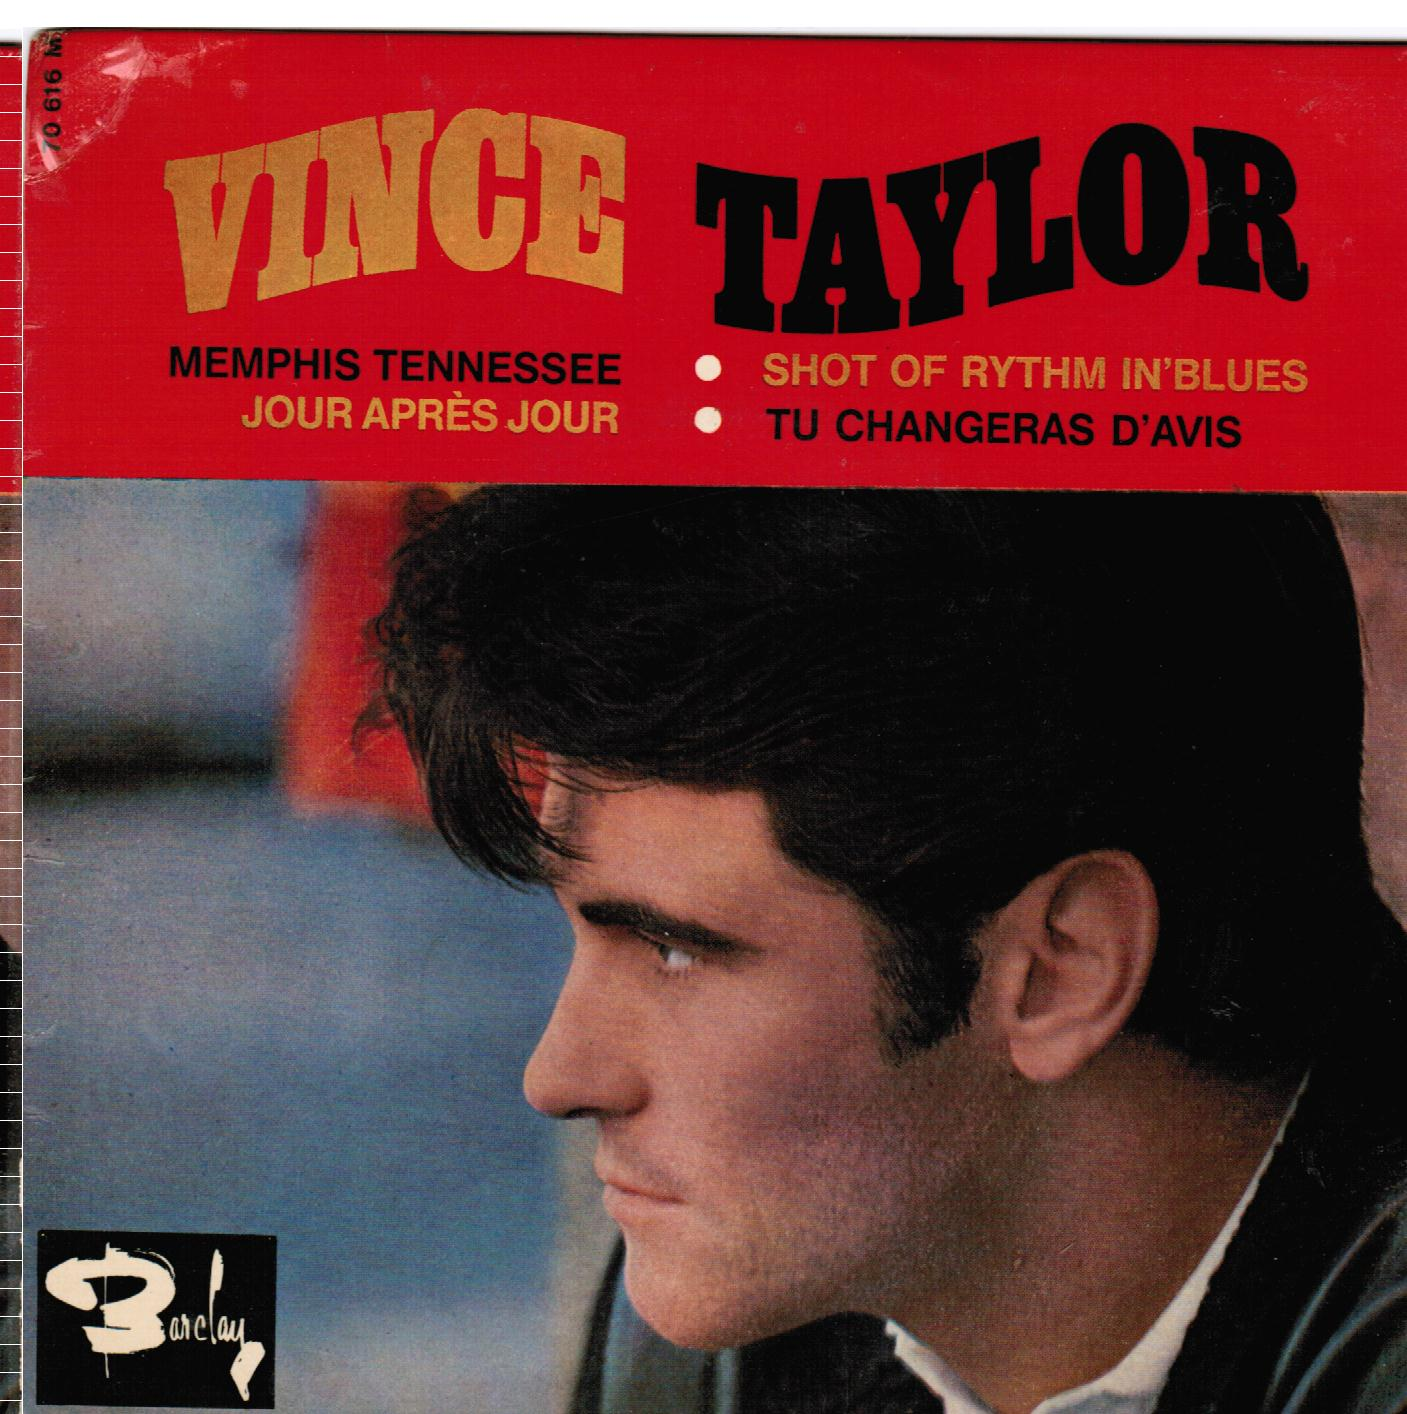 Vince Taylor | Memphis Tennessee French EP